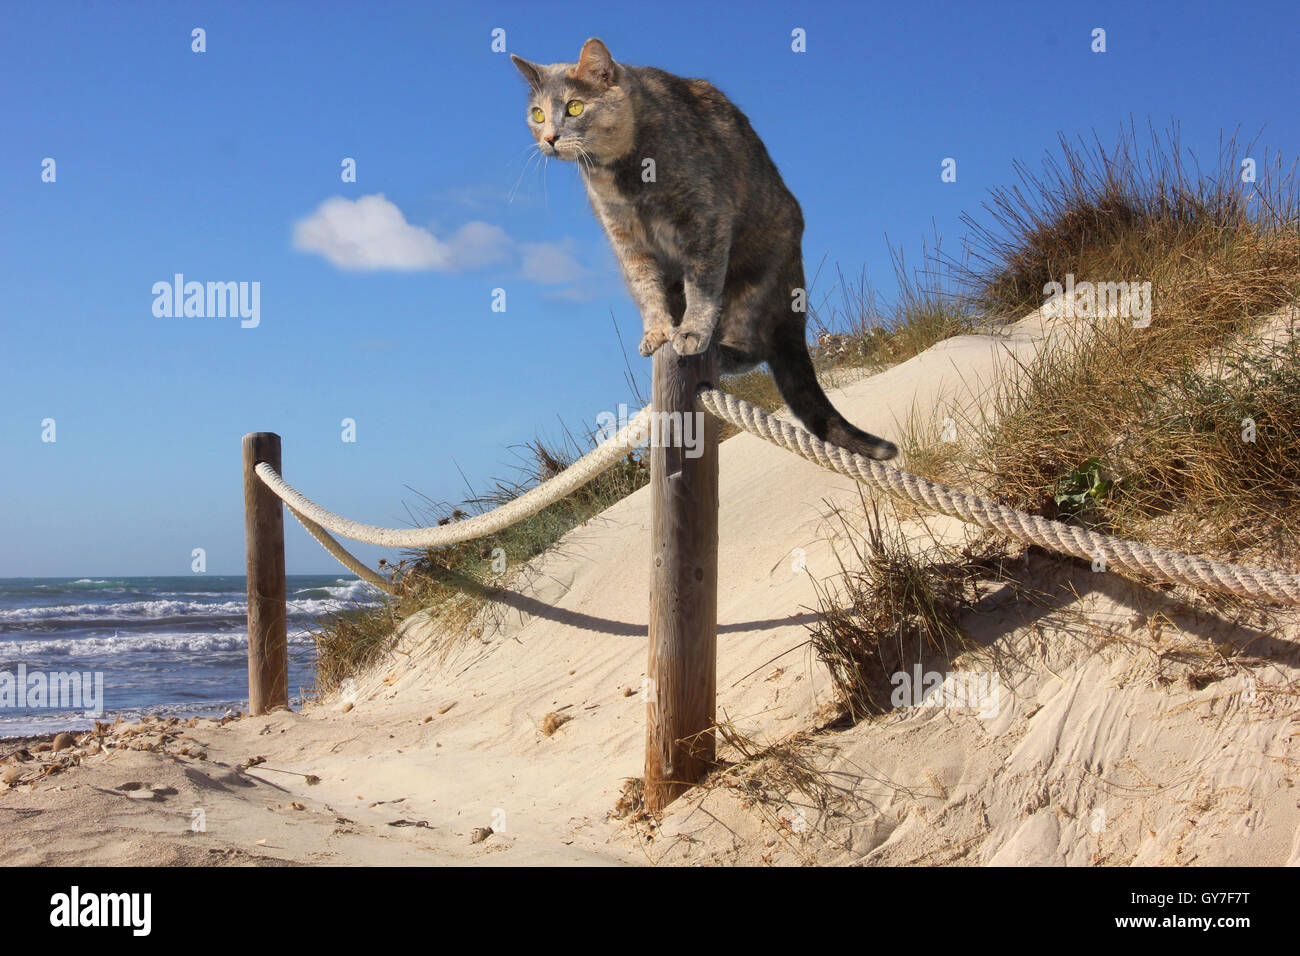 domestic cat, blue tortie, standing on a fence post on the beach in dunes at the sea, ocean - Stock Image